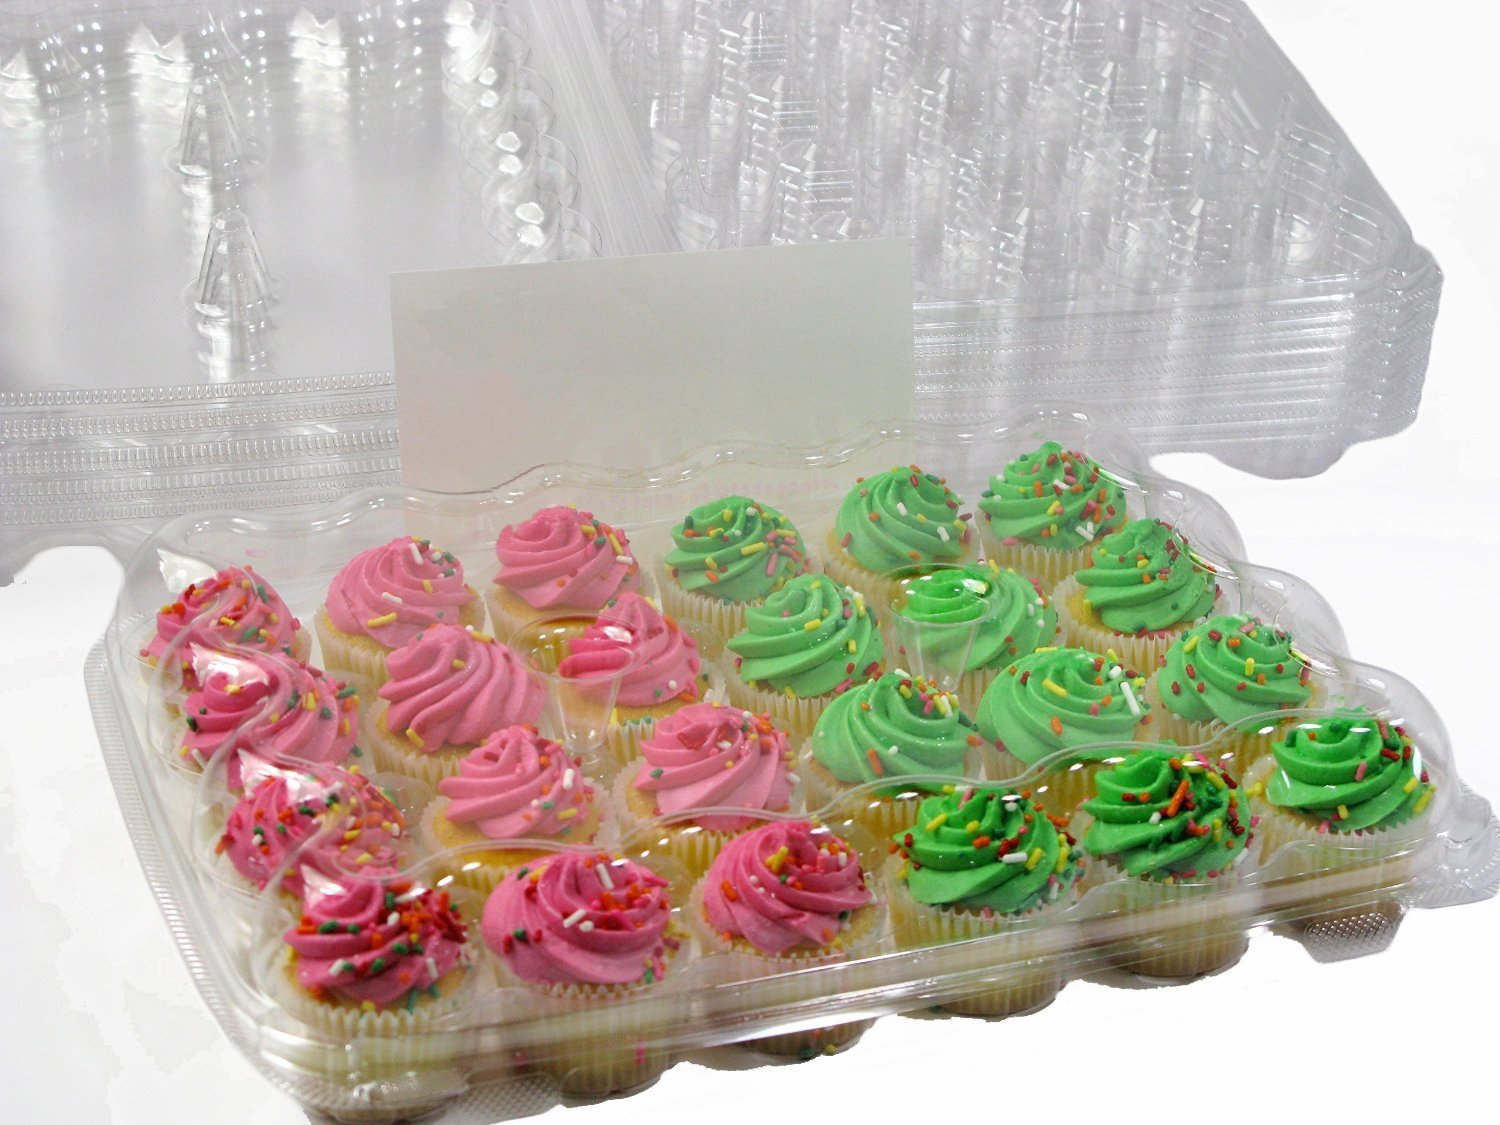 Katgely Cupcake Boxes Cupcake Containers Cupcake, Set of 12 by Katgely Inc KAT972403